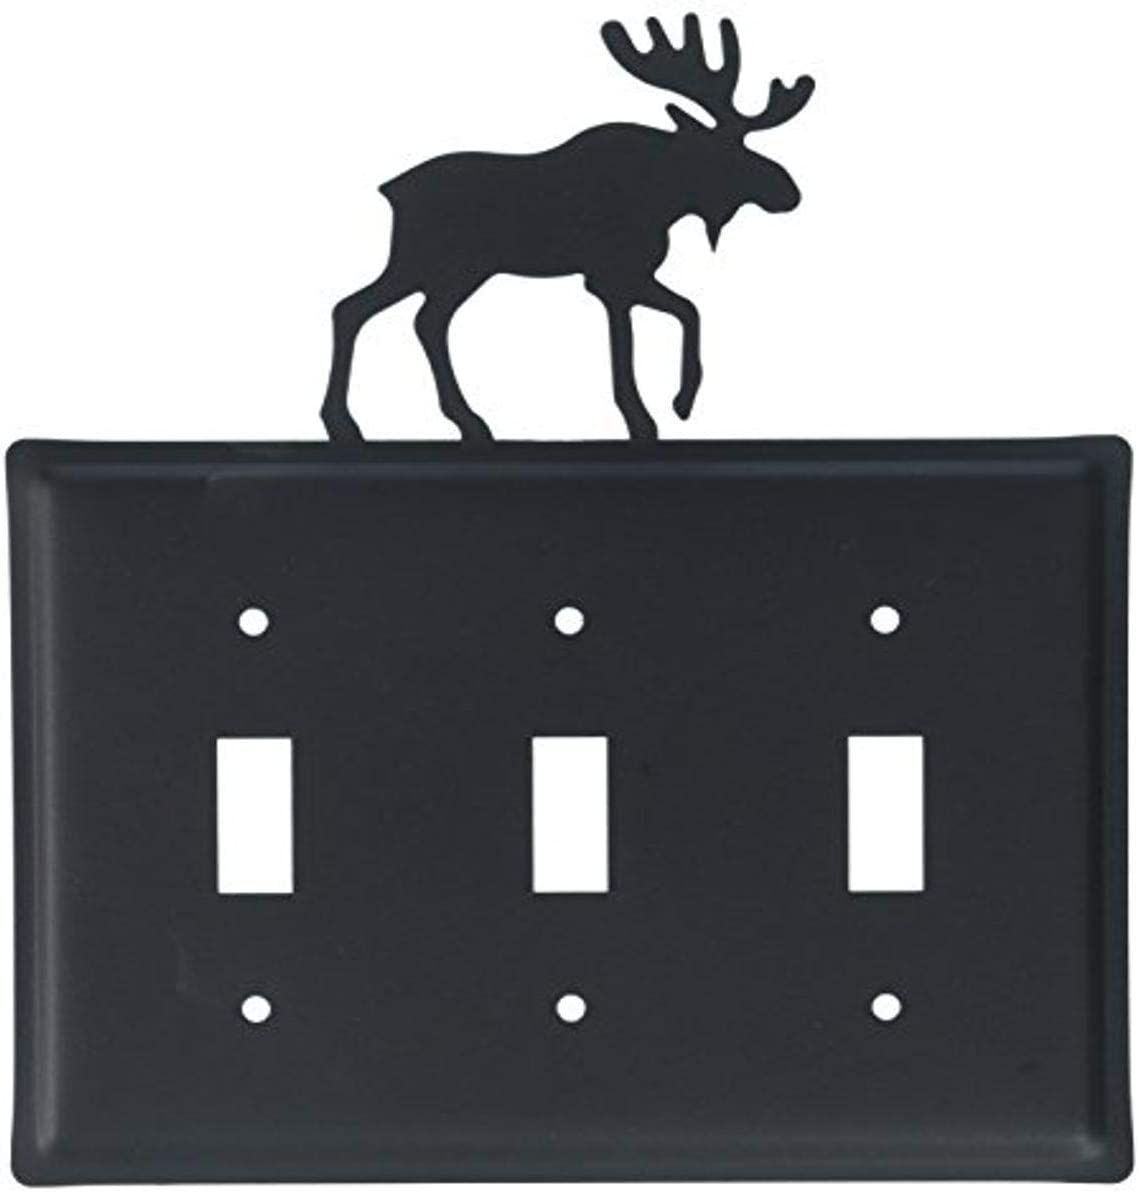 Max 77% OFF 8 Inch Moose Switch Triple Cover Super sale period limited